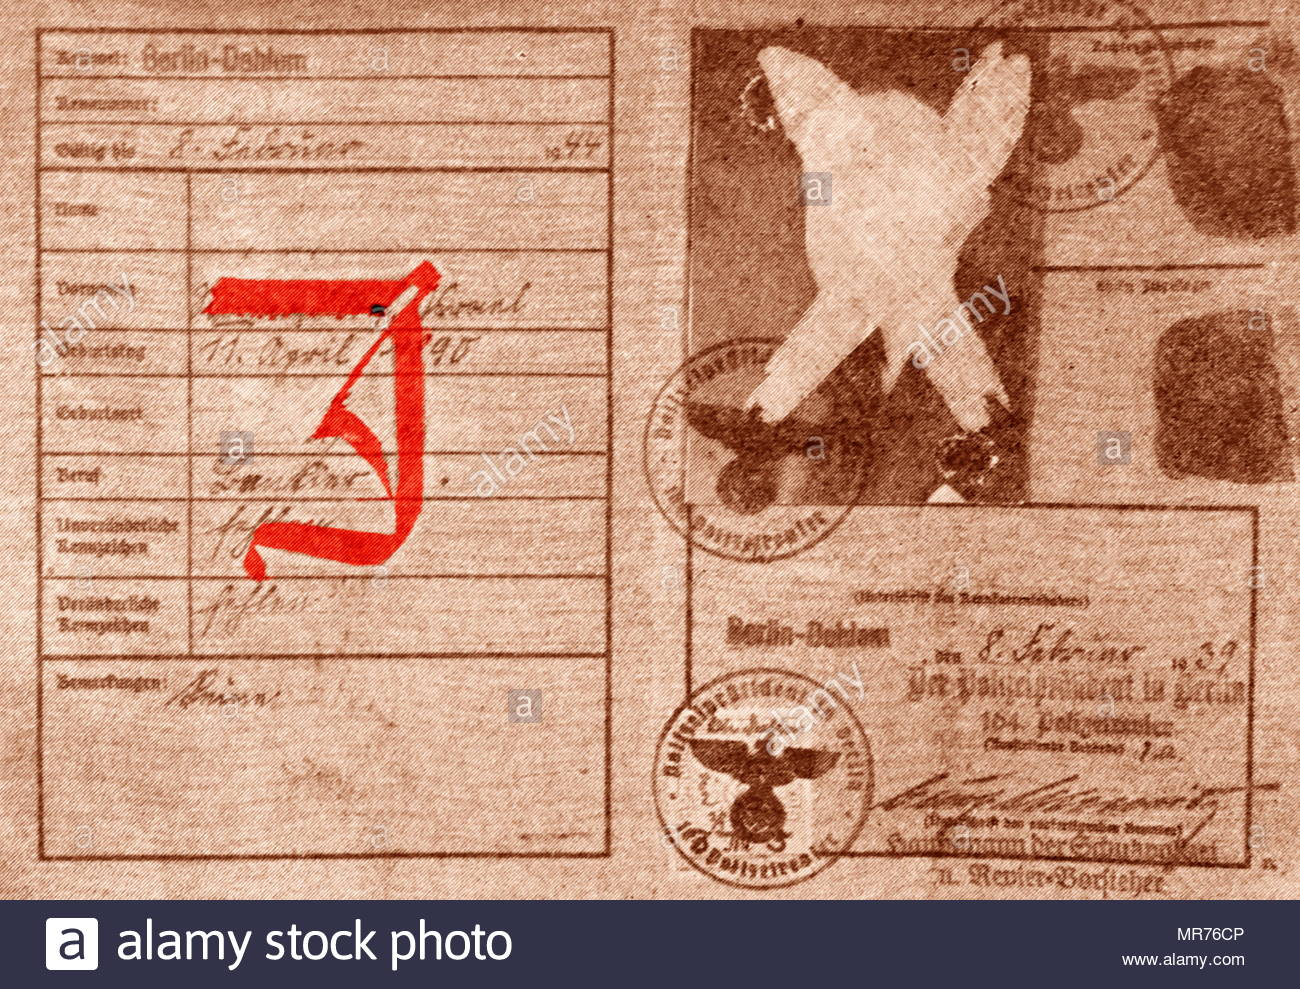 """A special identity card with a red """"J"""" stamped on it further advanced the exclusion of the Jews in 1939.  All Jewish people had to carry an identity card after the enactment of the Nuremberg Laws (Nürnberger Gesetze); anti-Semitic laws in Nazi Germany, introduced on 15 September 1935. - Stock Image"""